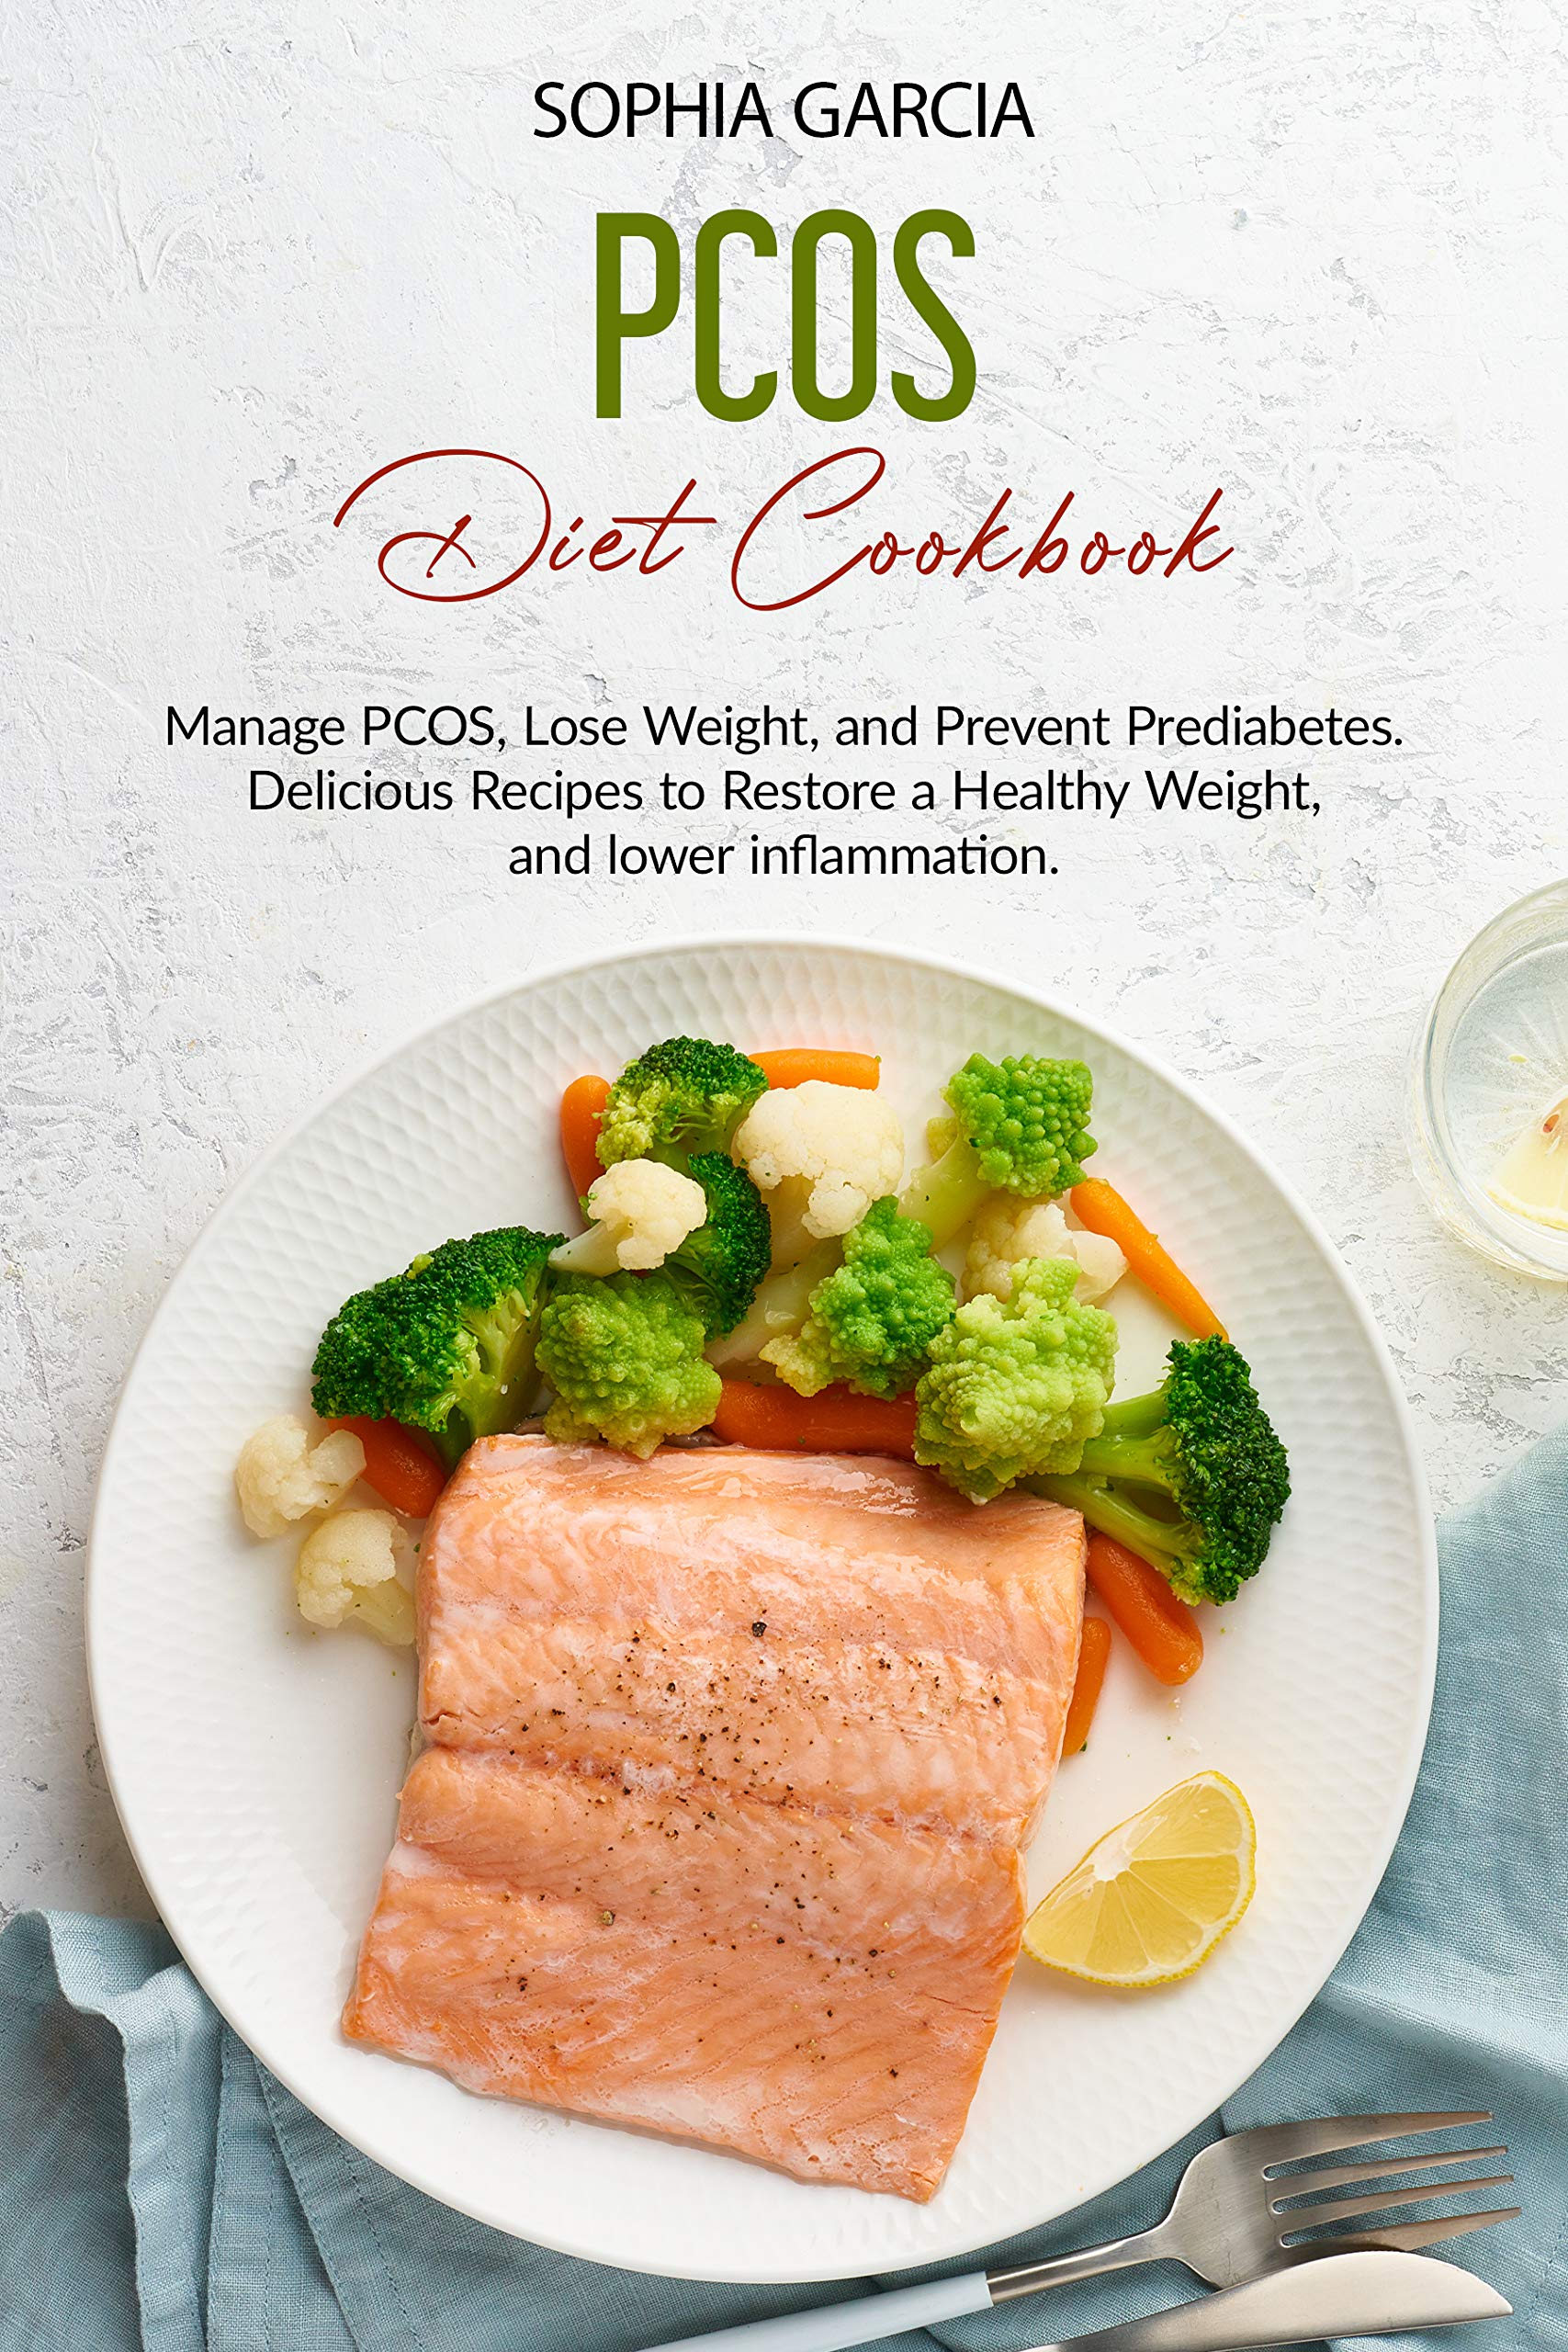 PCOS Diet Cookbook : Manage PCOS, Lose Weight, and Prevent Prediabetes. Delicious Recipes to Restore a Healthy Weight,and lower inflammation